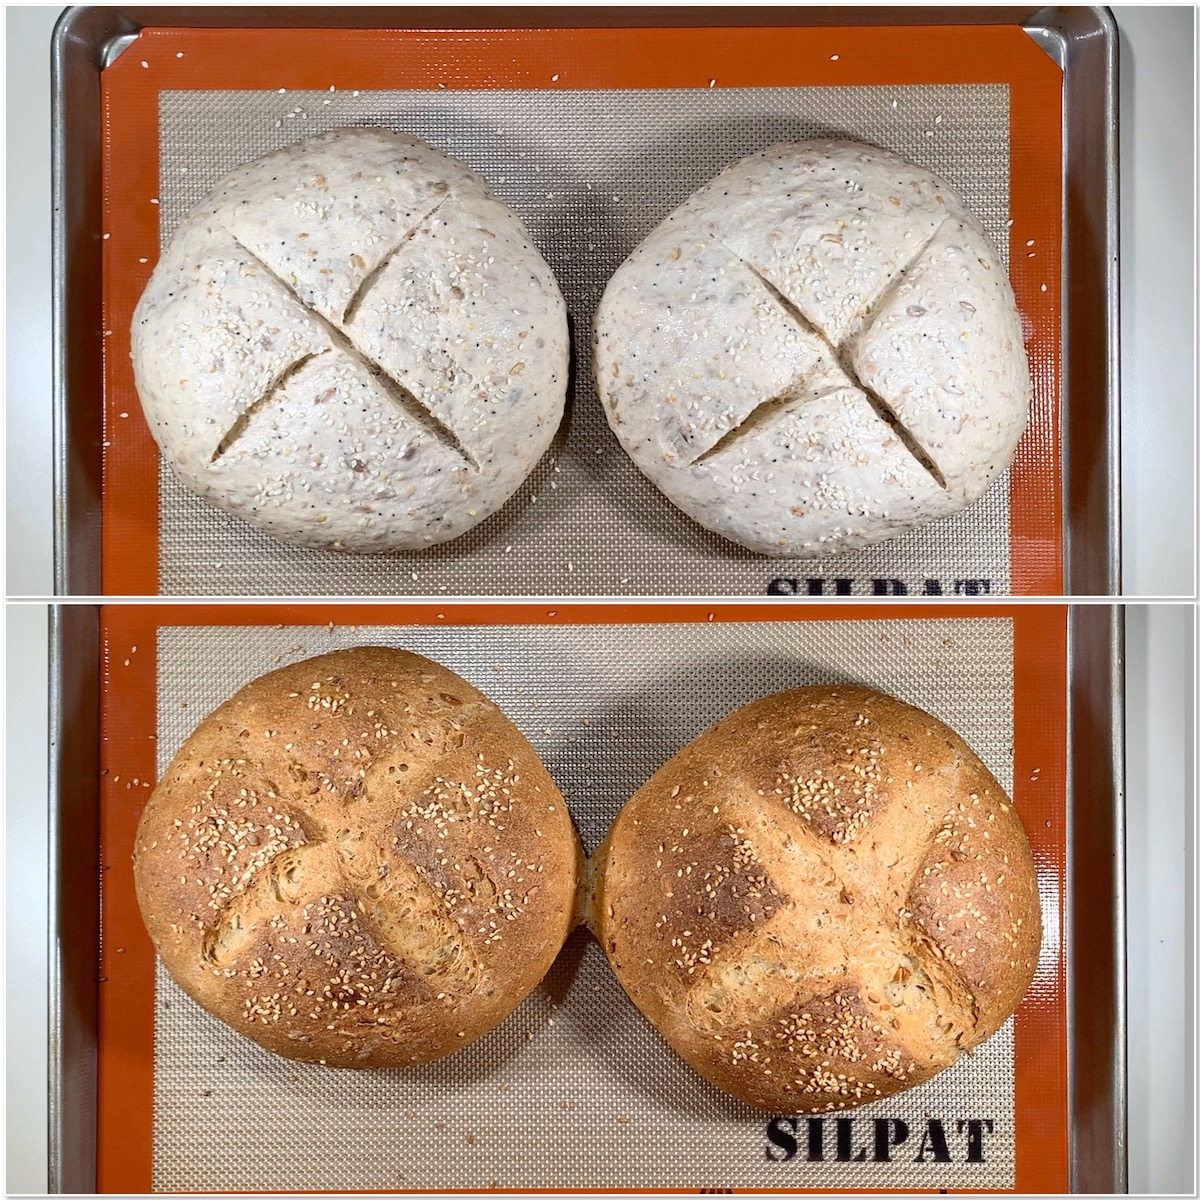 Before and after baking multigrain sourdough bread collage